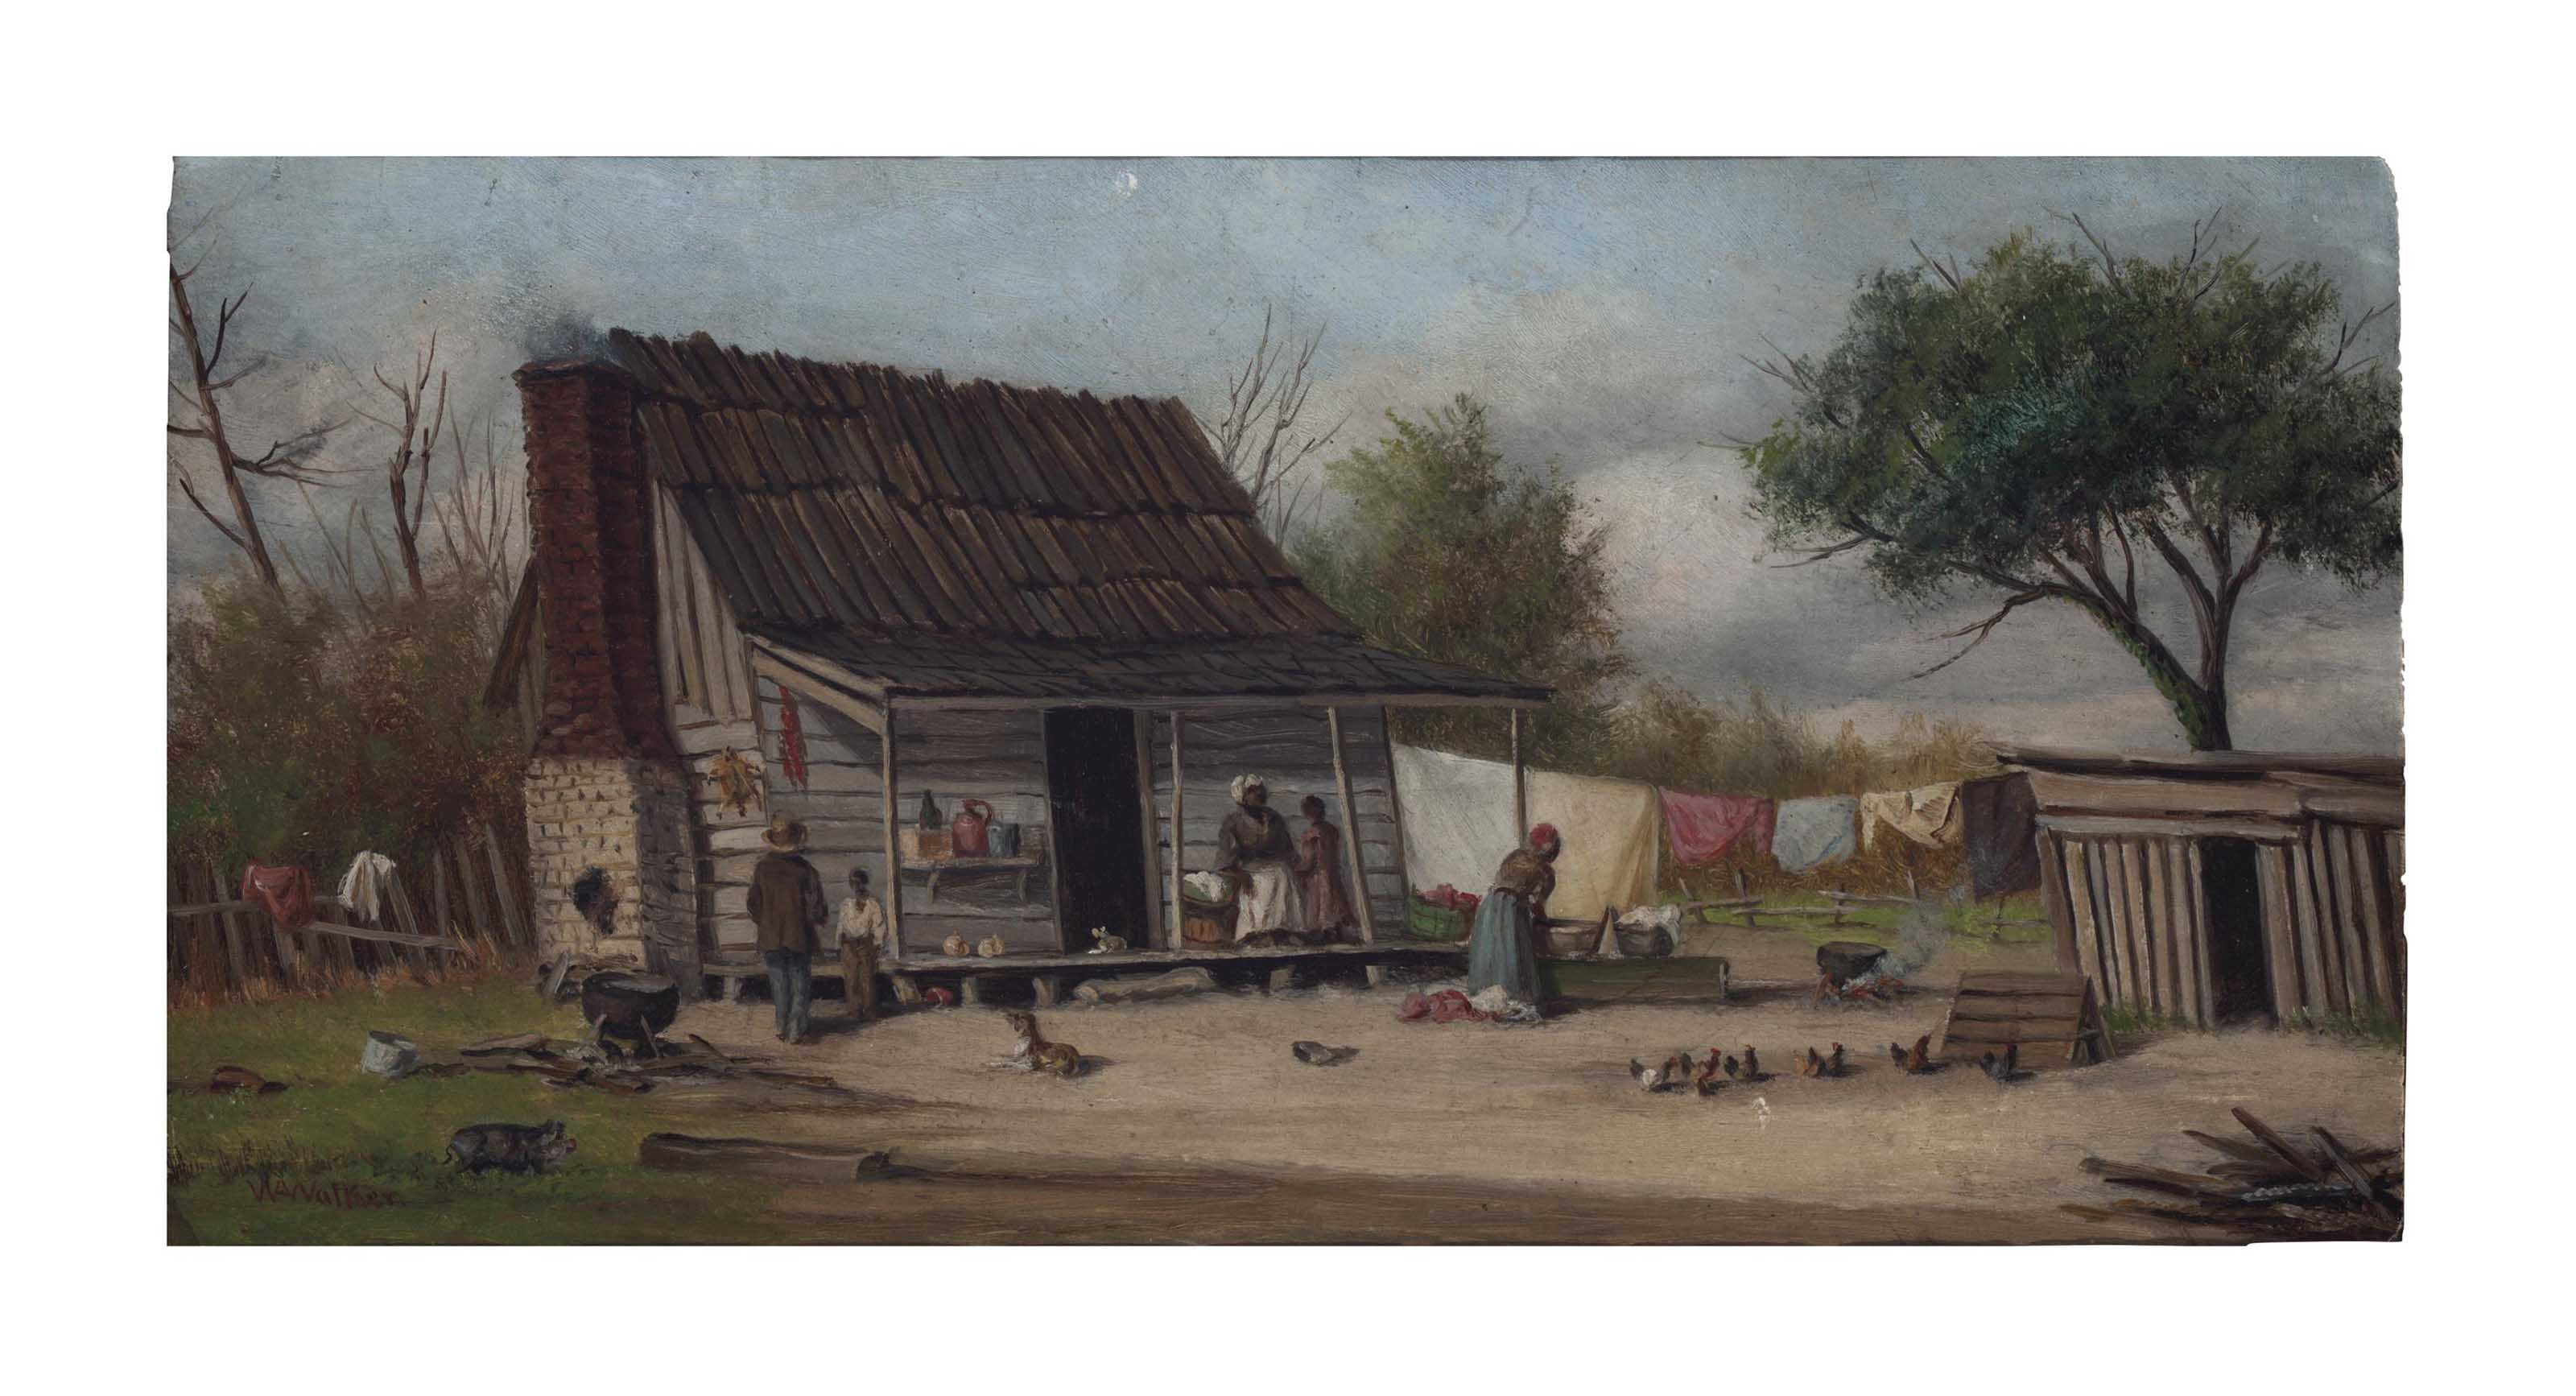 Cabin with figures and chickens